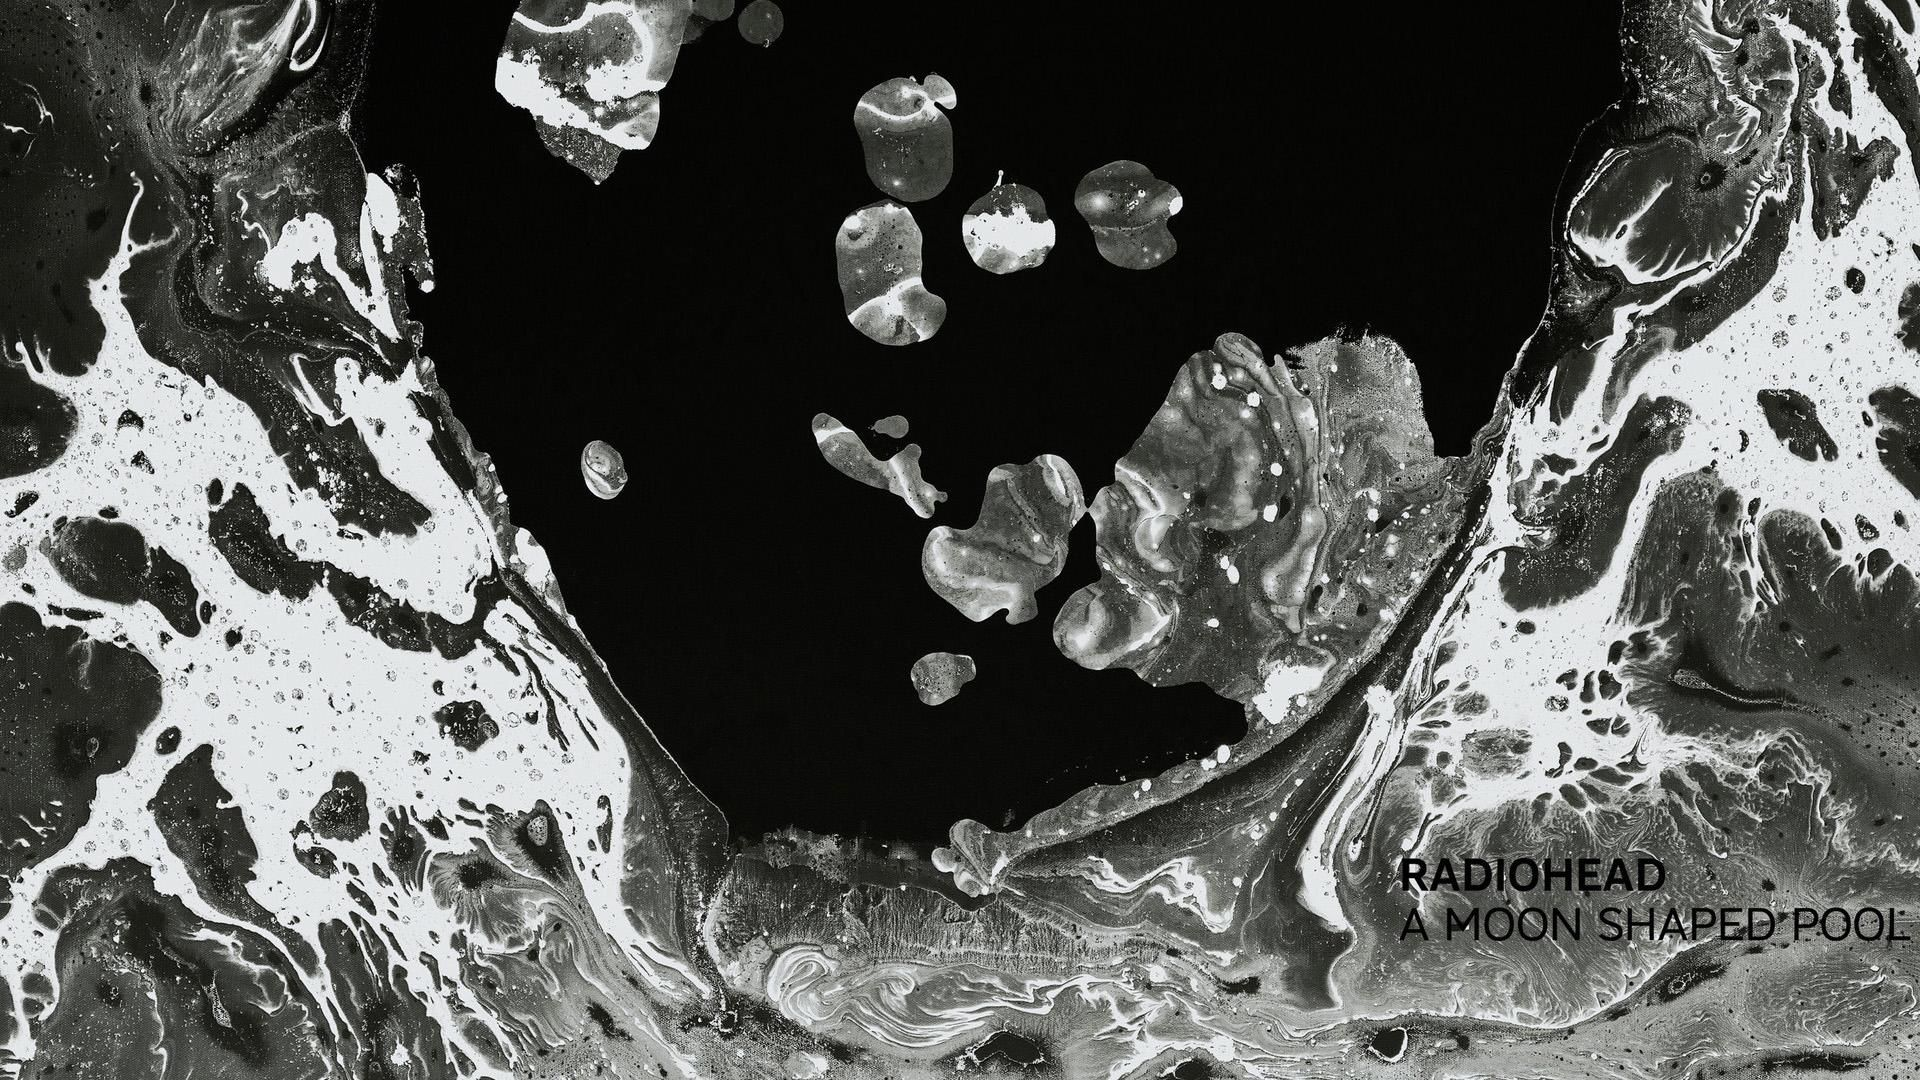 Radiohead A Moon Shaped Pool 1920x1080 Hq Backgrounds Hd Wallpapers Gallery Gallsource Com Musica